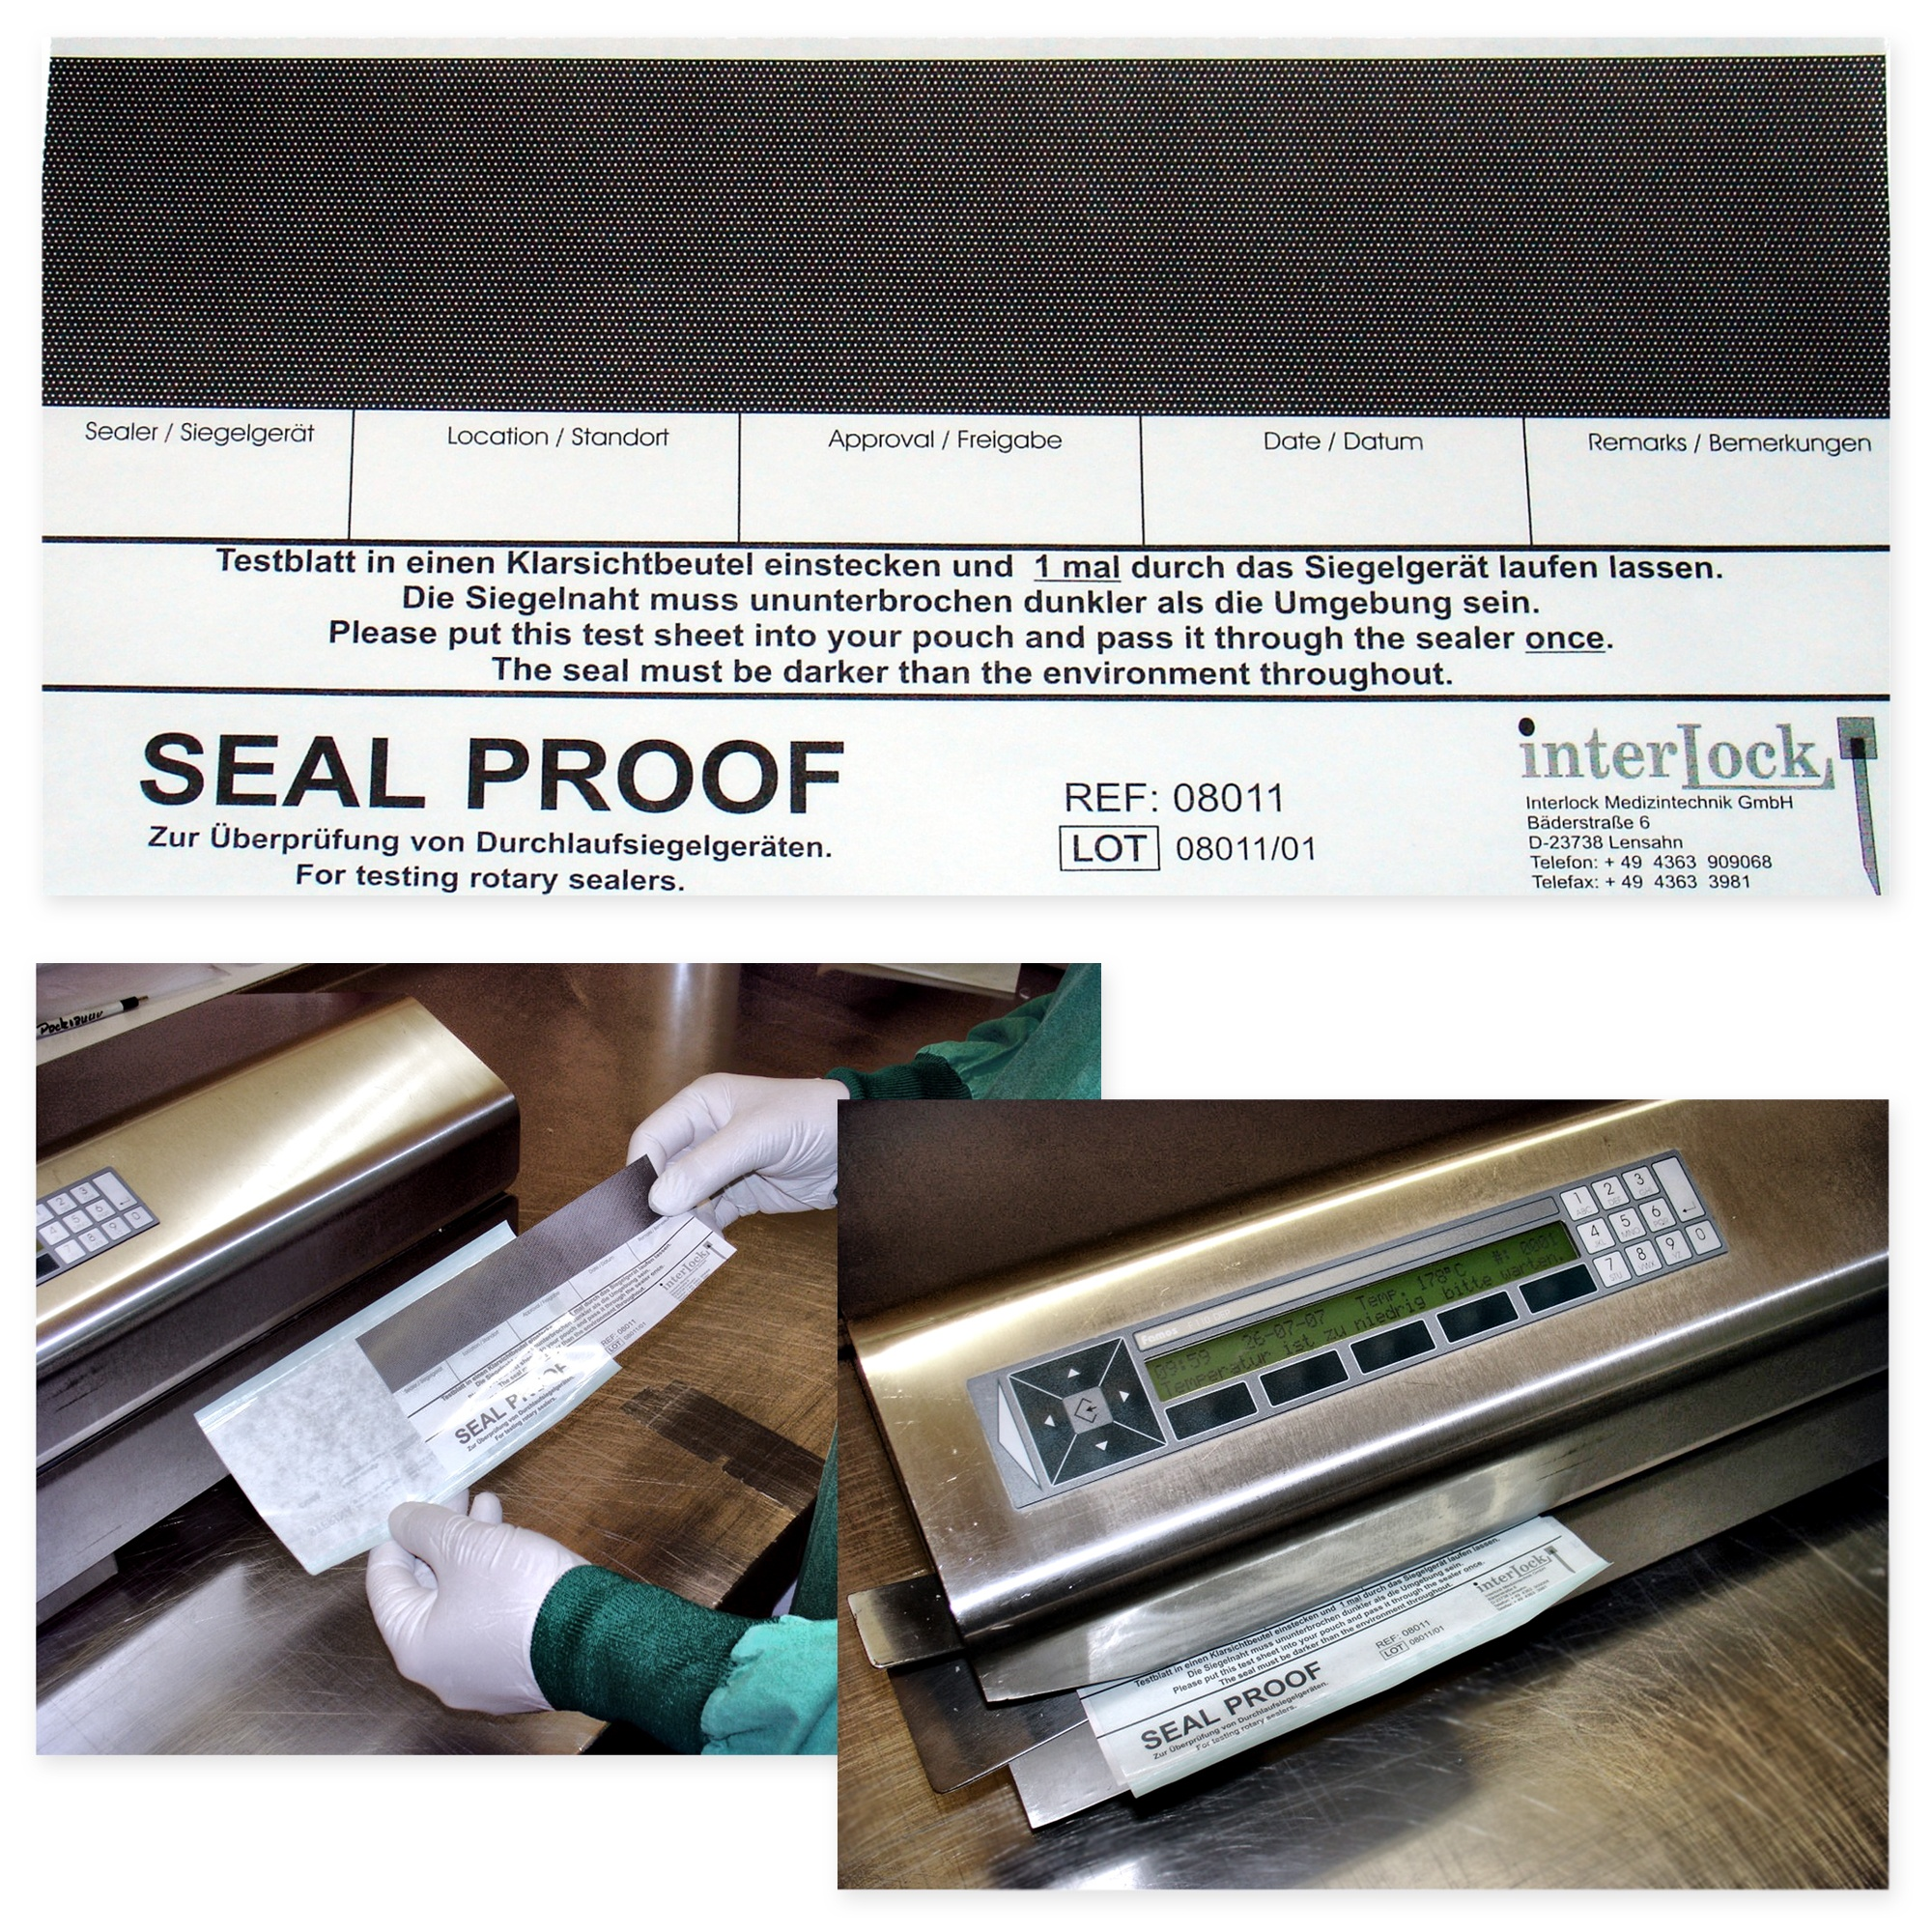 SEAL PROOF - for pouches made of paper / film Image